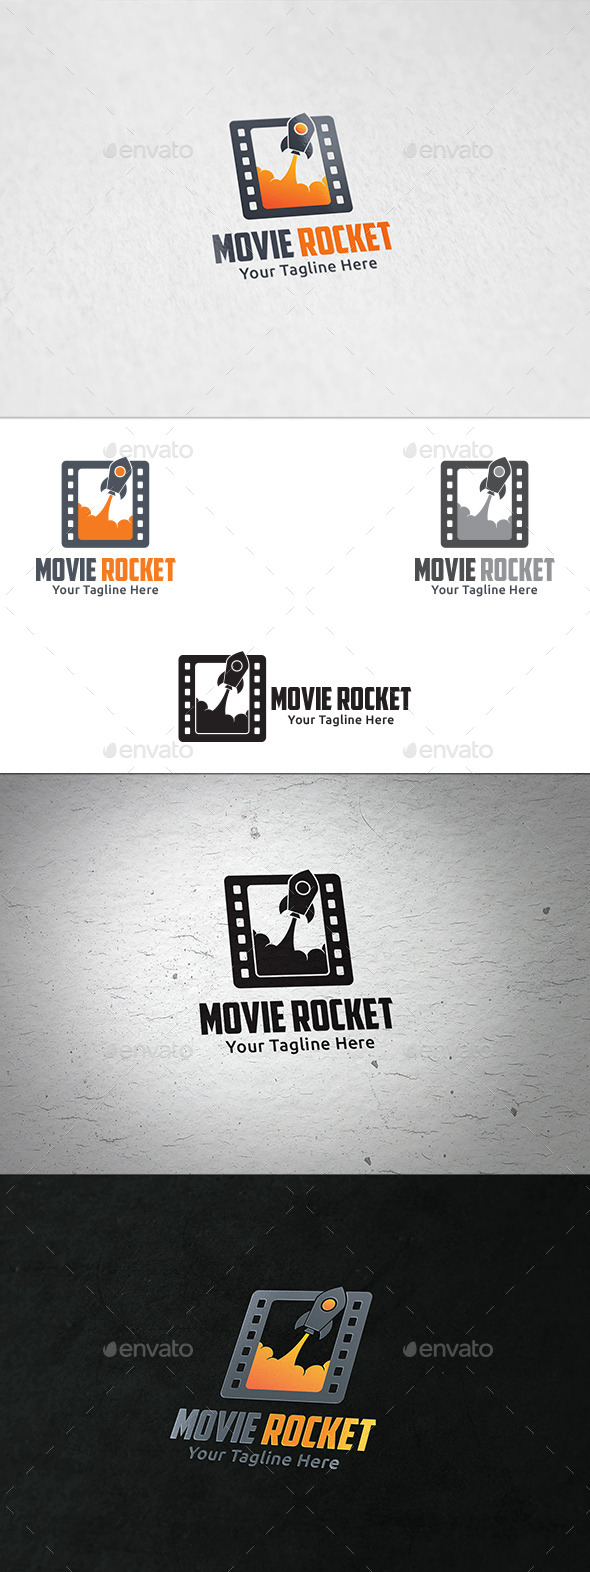 Movie Rocket - Logo Template - Abstract Logo Templates